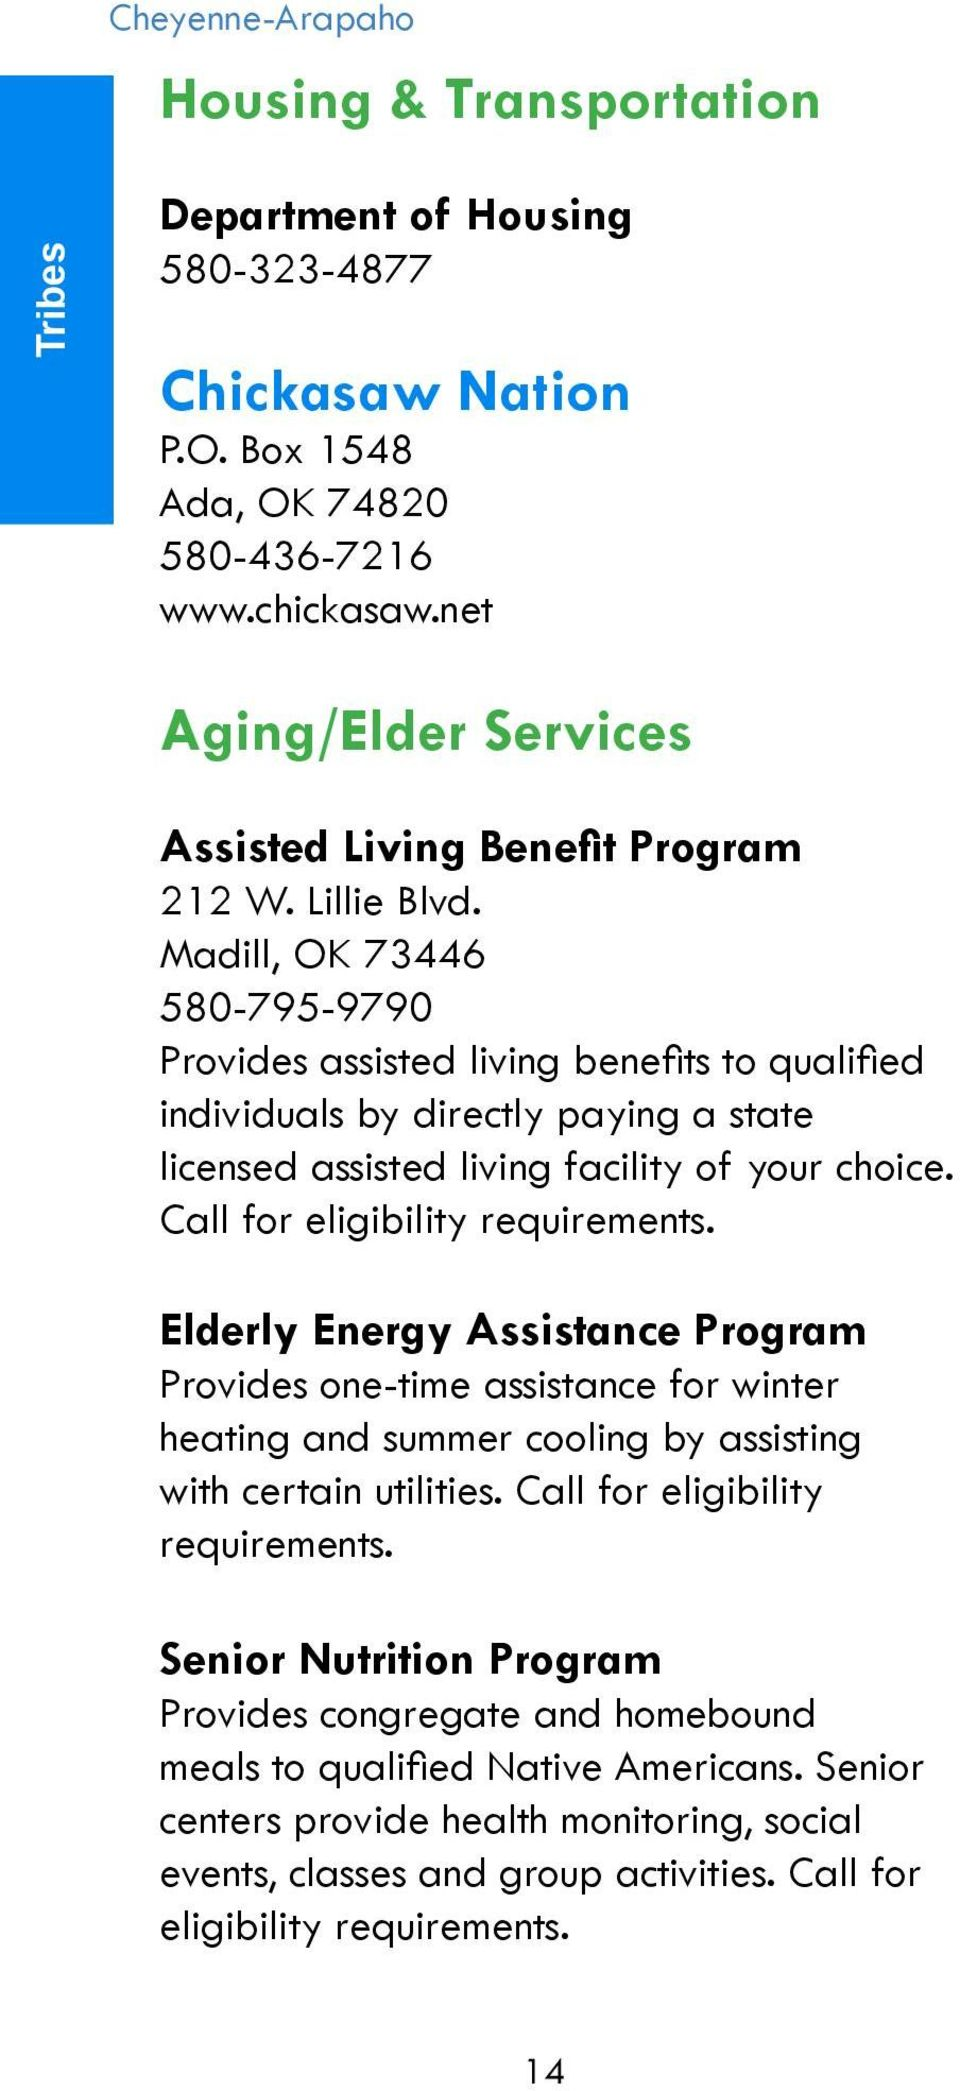 Madill, OK 73446 580-795-9790 Provides assisted living benefits to qualified individuals by directly paying a state licensed assisted living facility of your choice. Call for eligibility requirements.